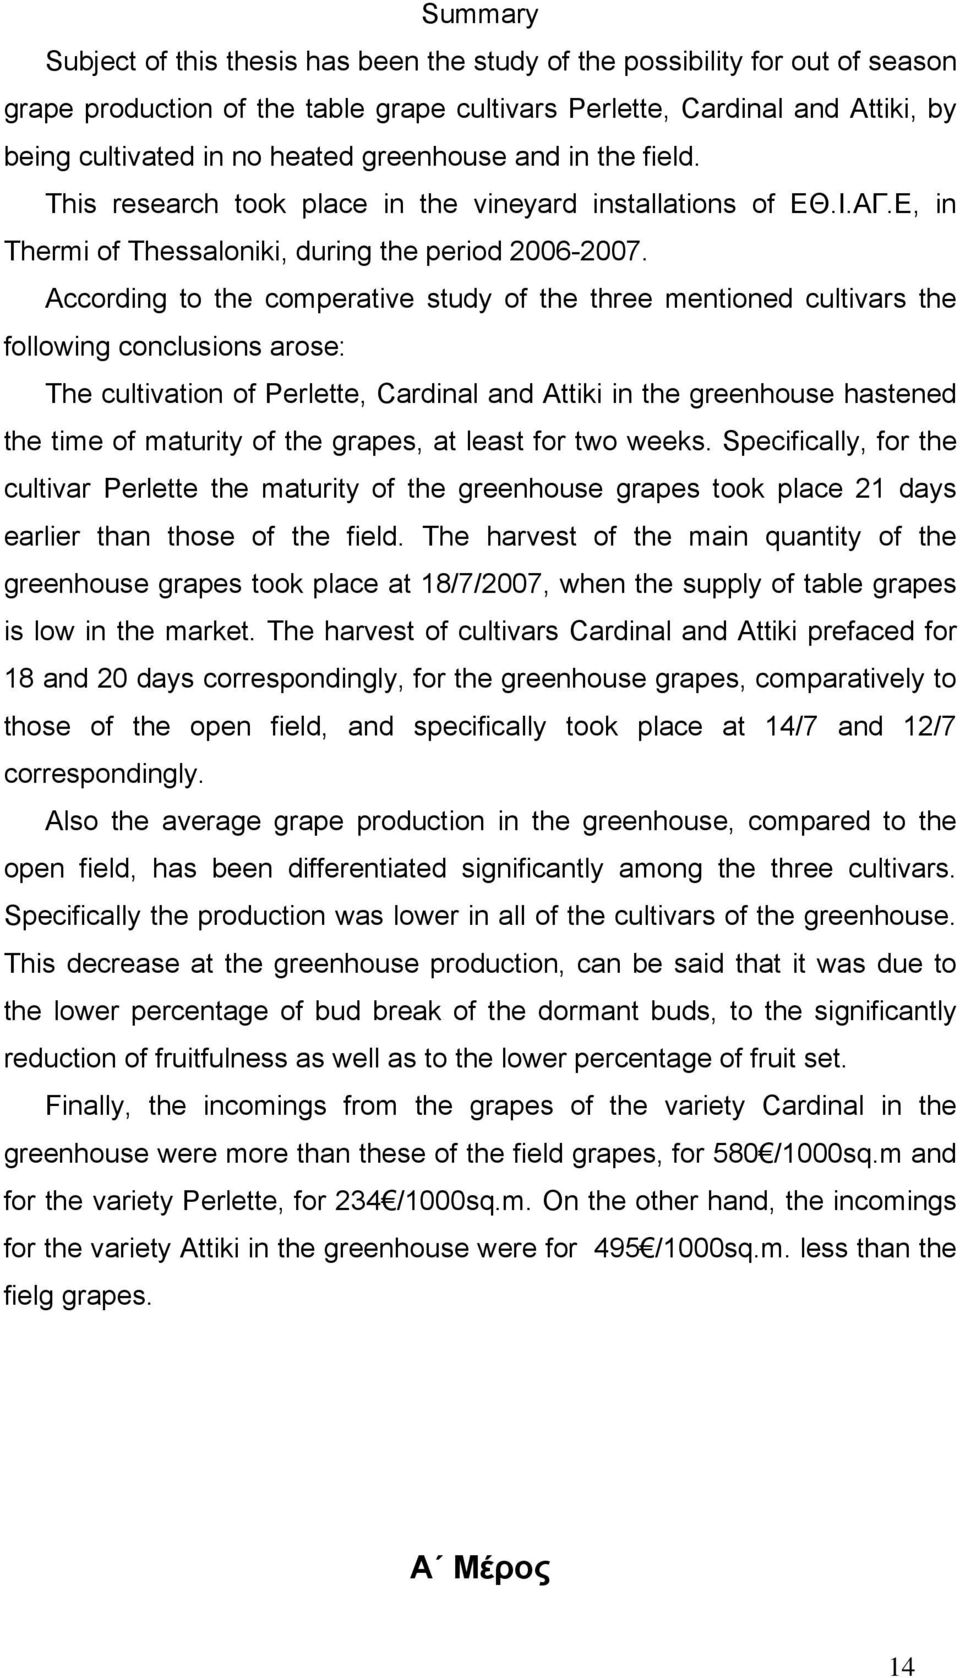 According to the comperative study of the three mentioned cultivars the following conclusions arose: The cultivation of Perlette, Cardinal and Attiki in the greenhouse hastened the time of maturity